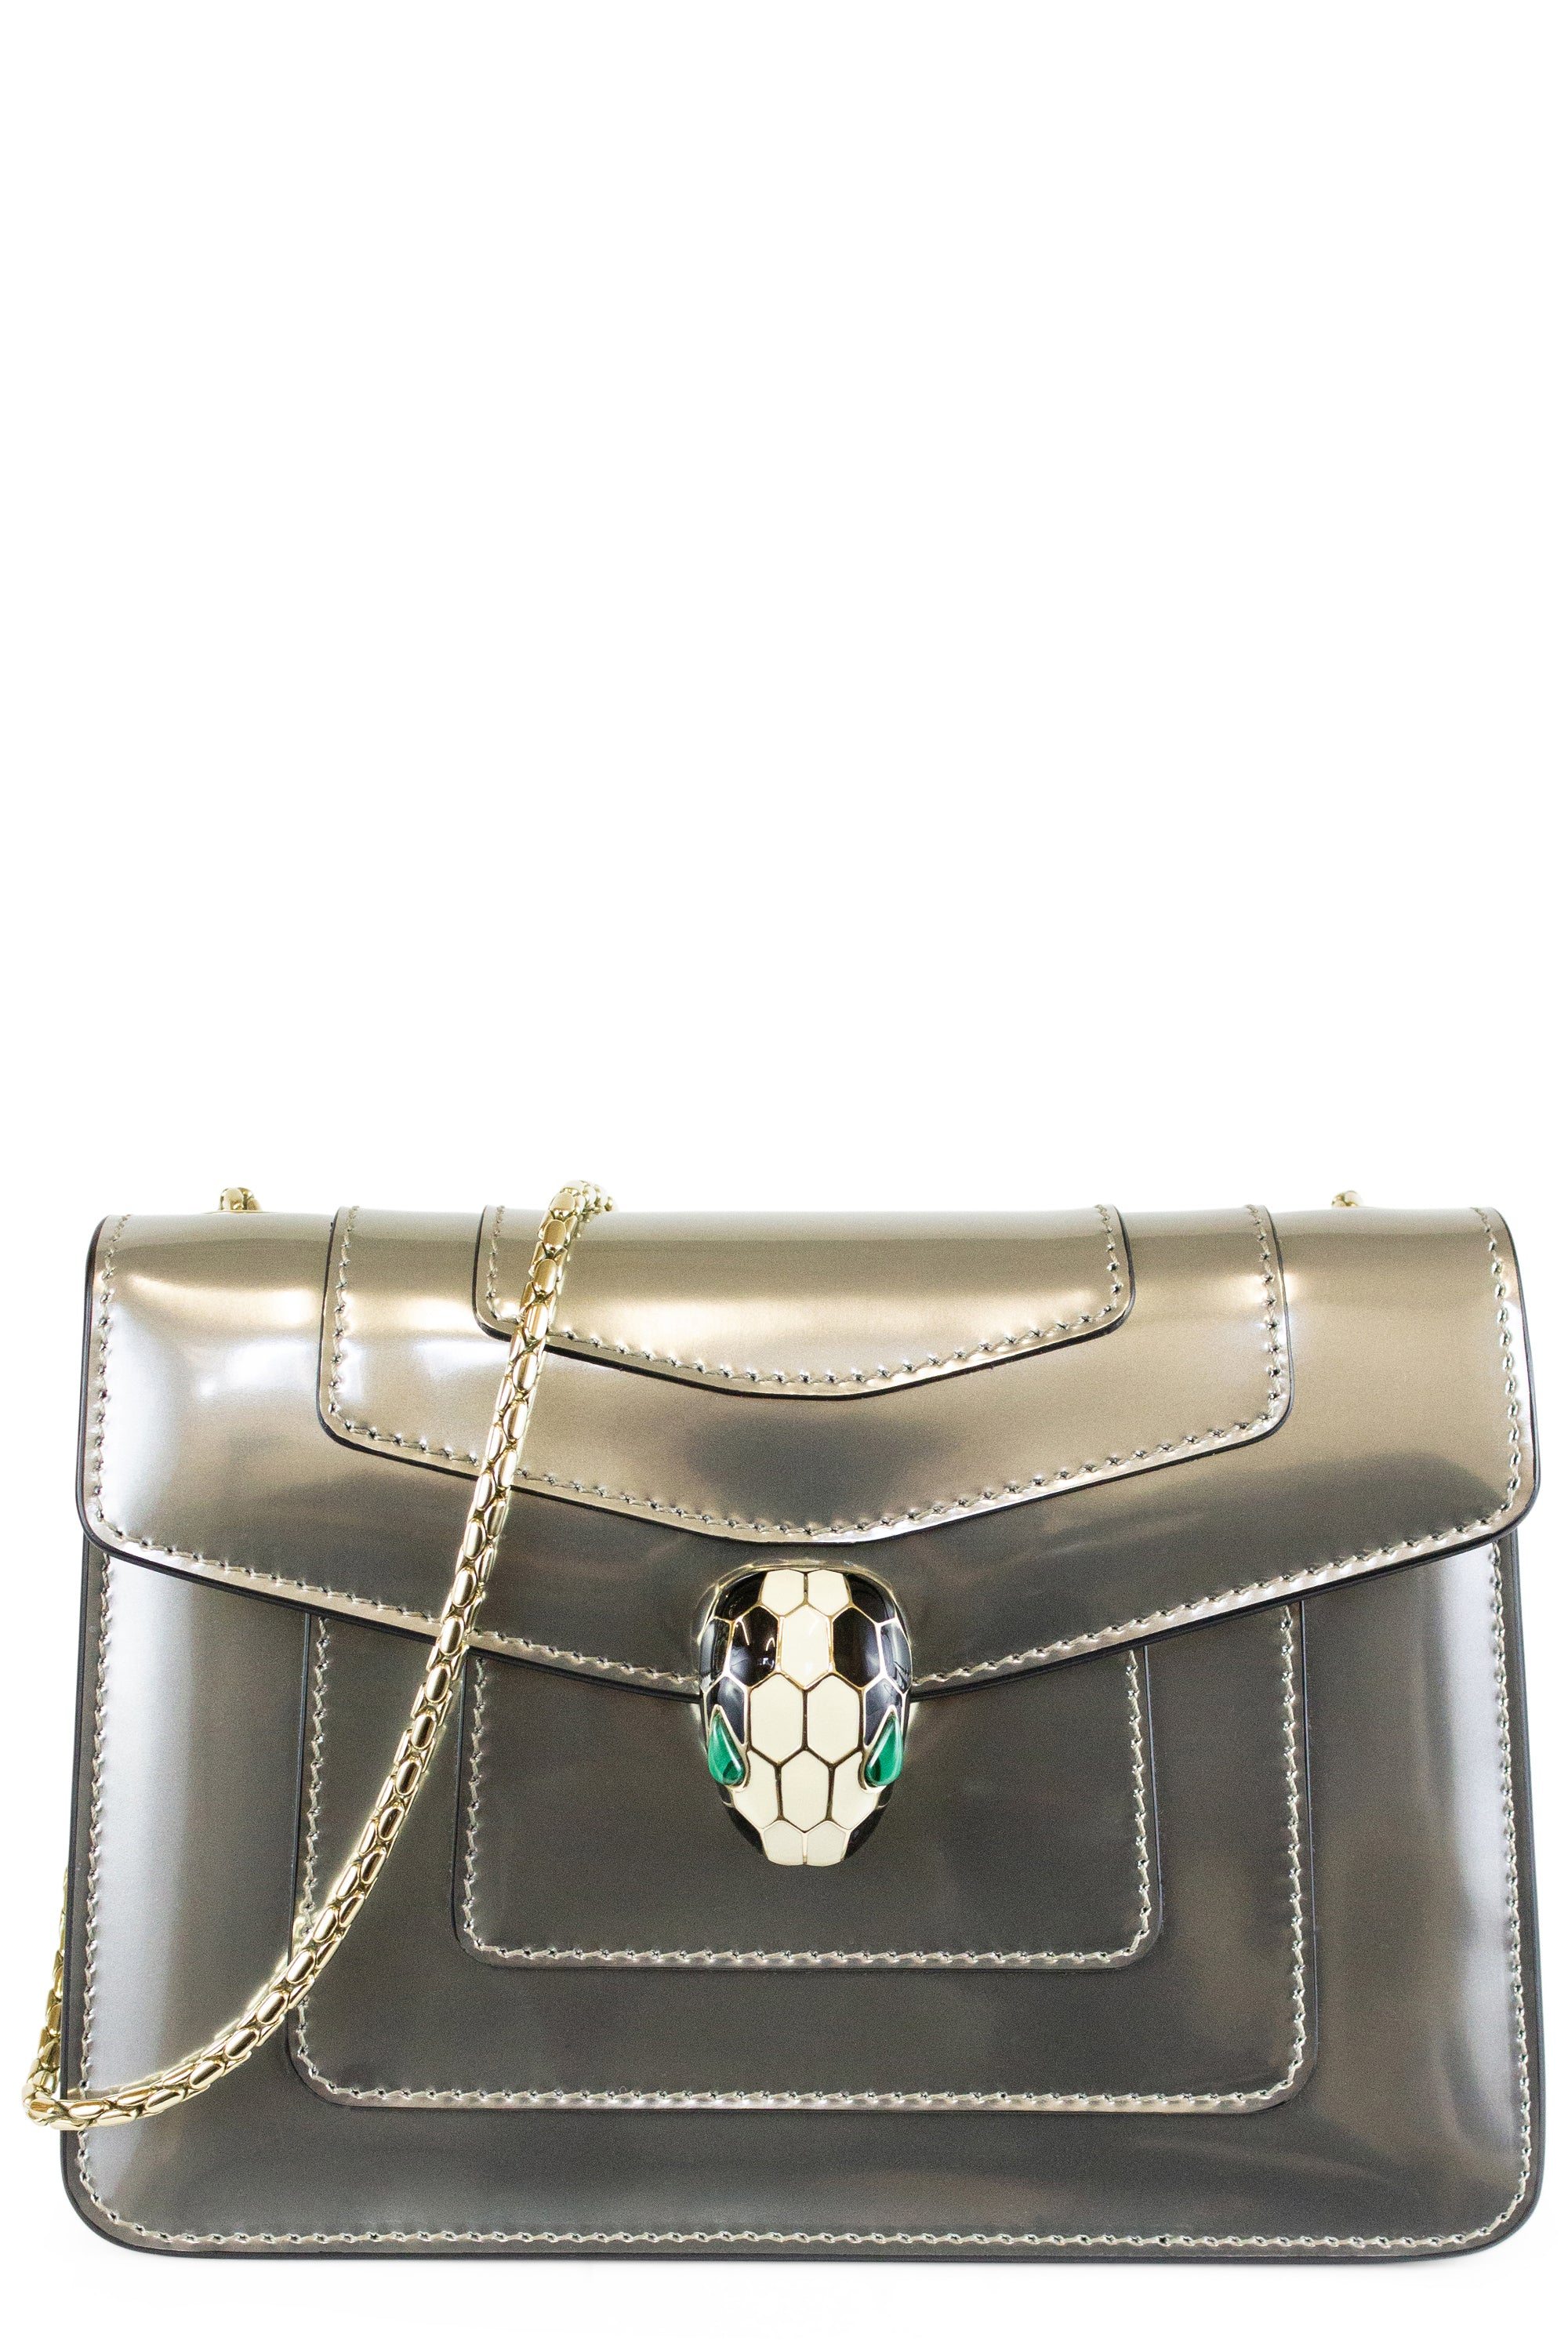 Bvlgari Flap Cover Bag Serpenti Forever